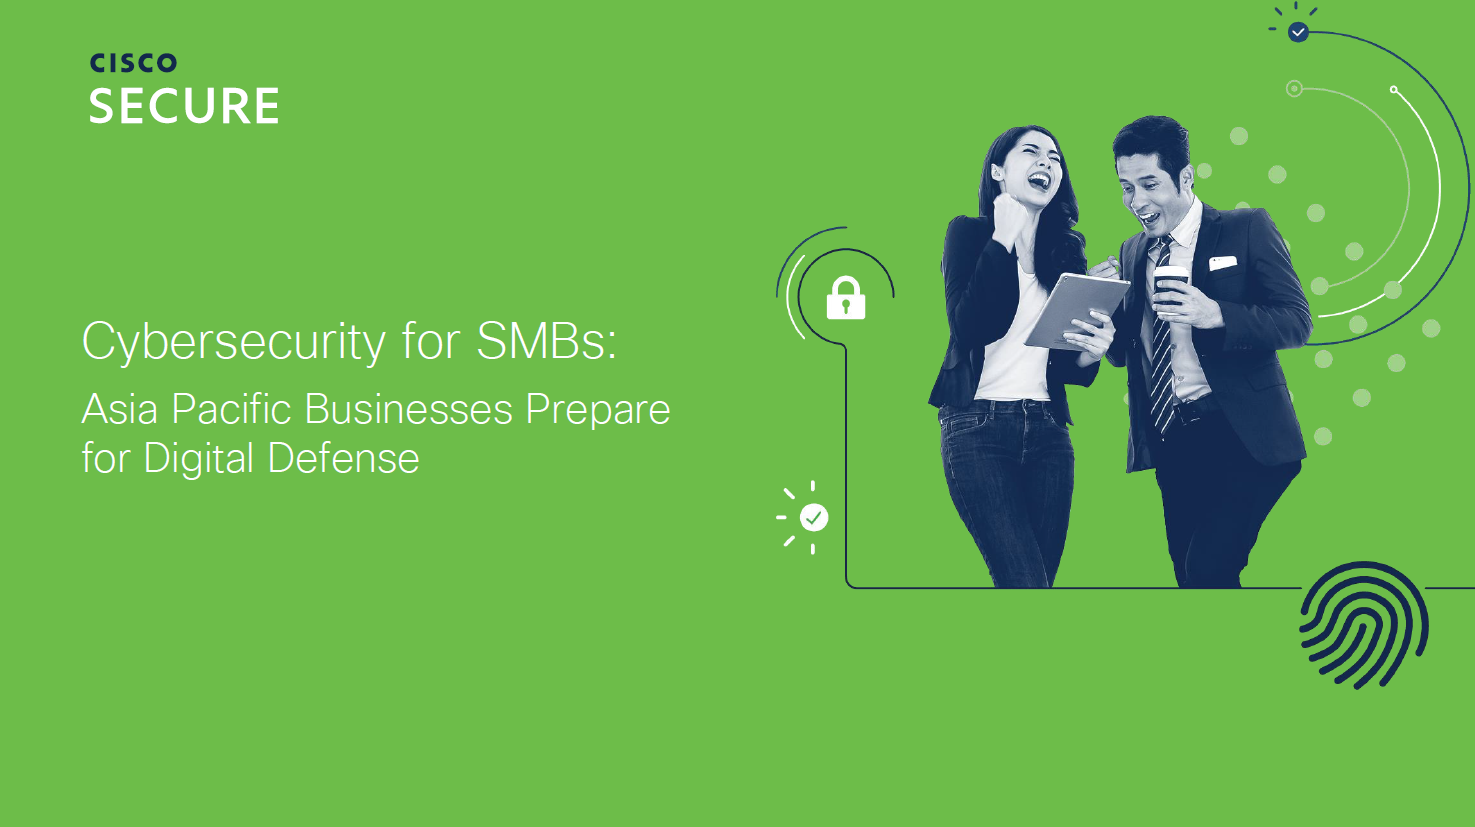 Cisco cybersecurity fo SMBs